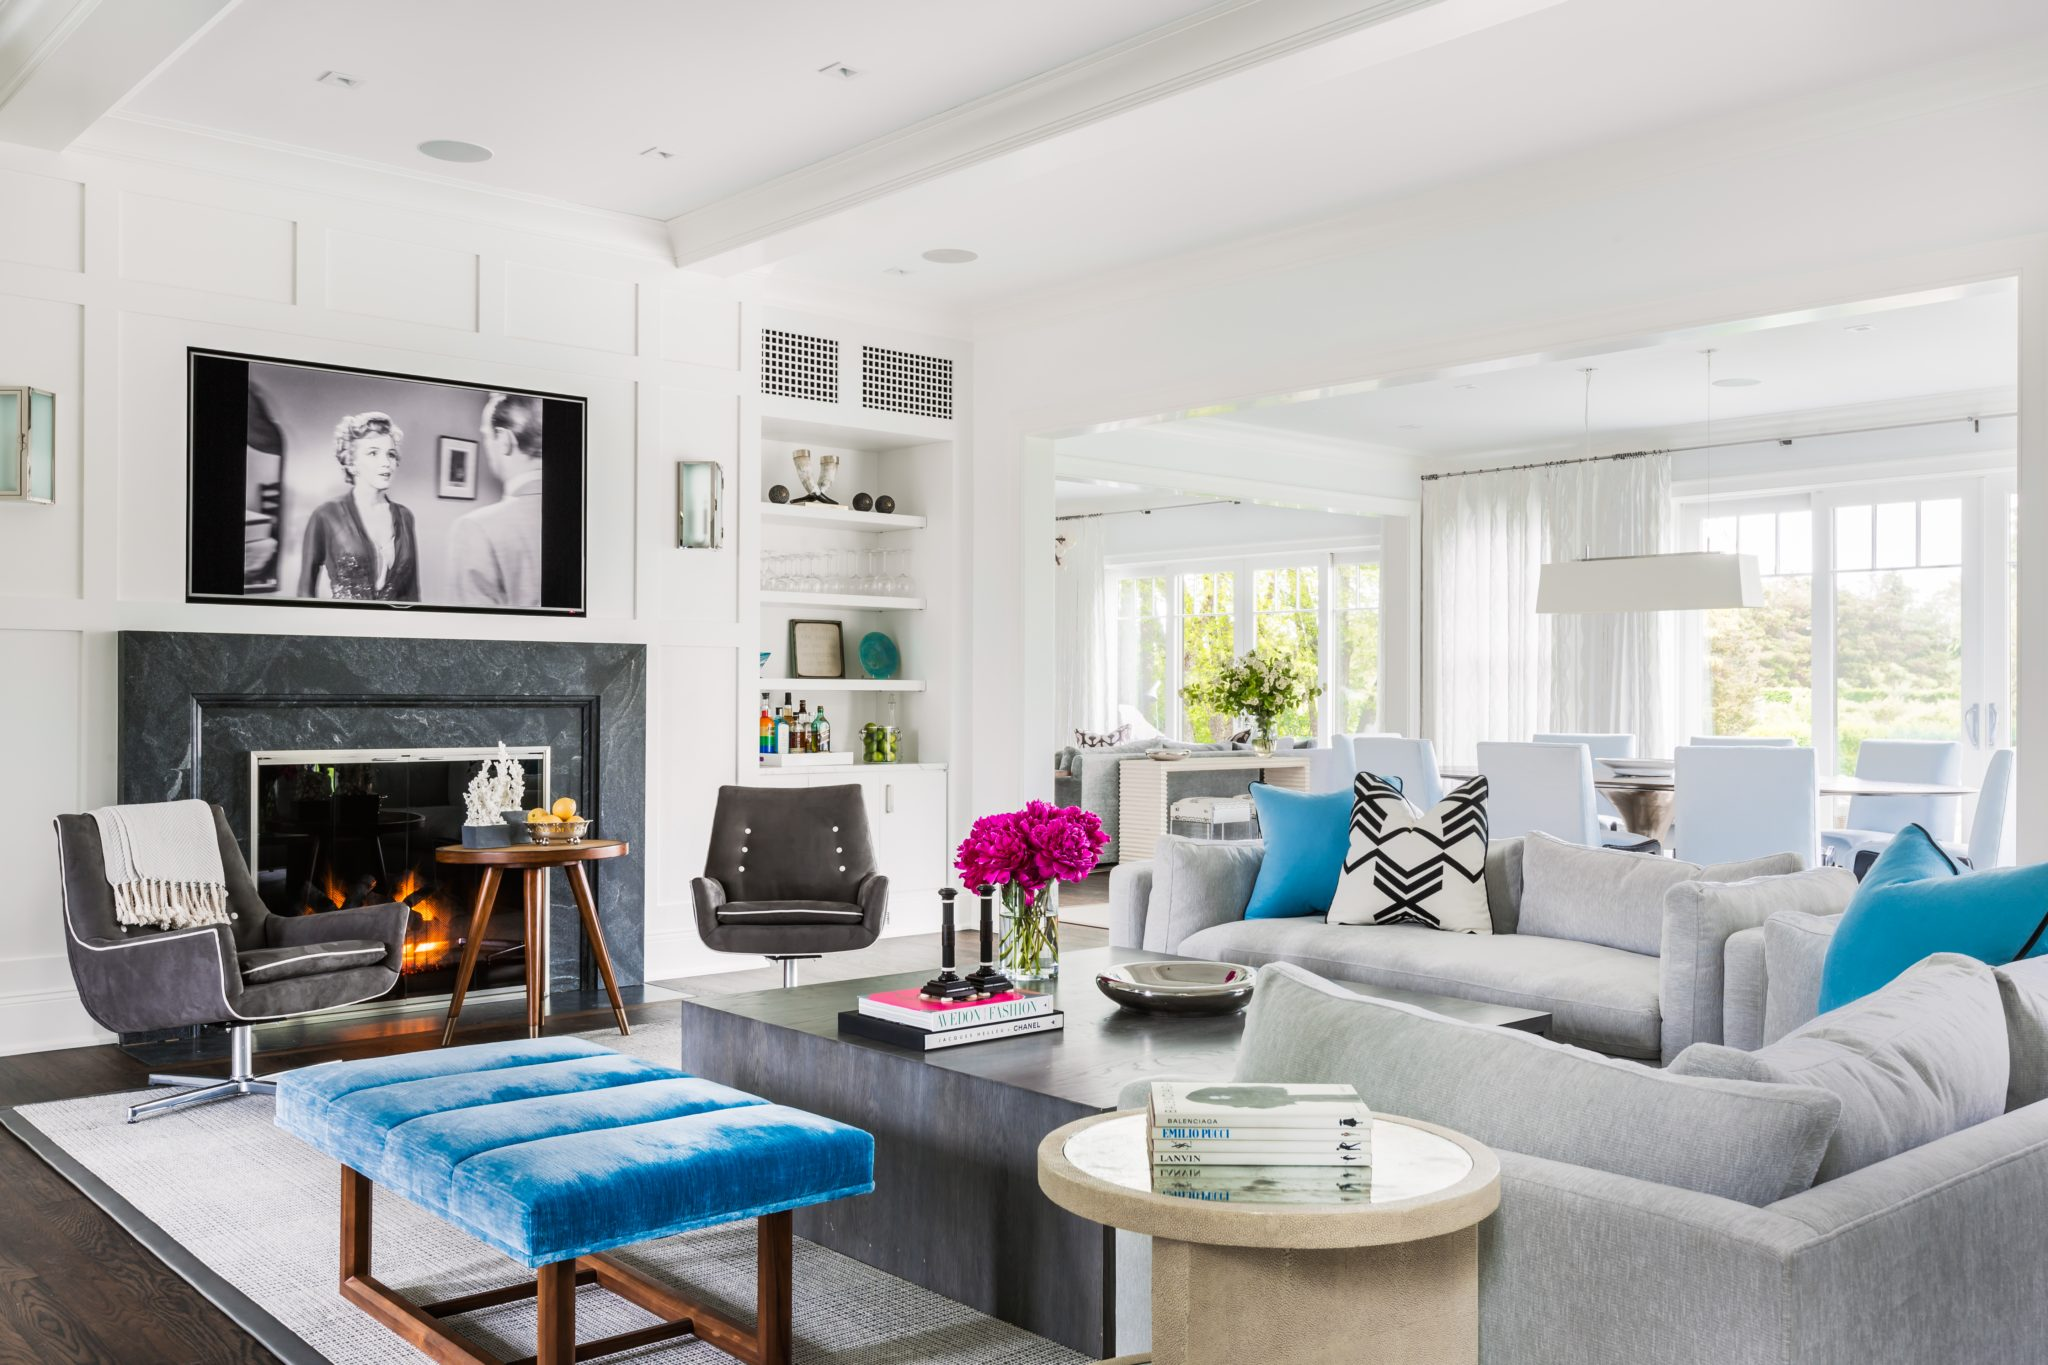 Transitional Living Room with Paneled Walls, Turquoise Accents, and Modern Stone Mantel by Alisberg Parker Architects